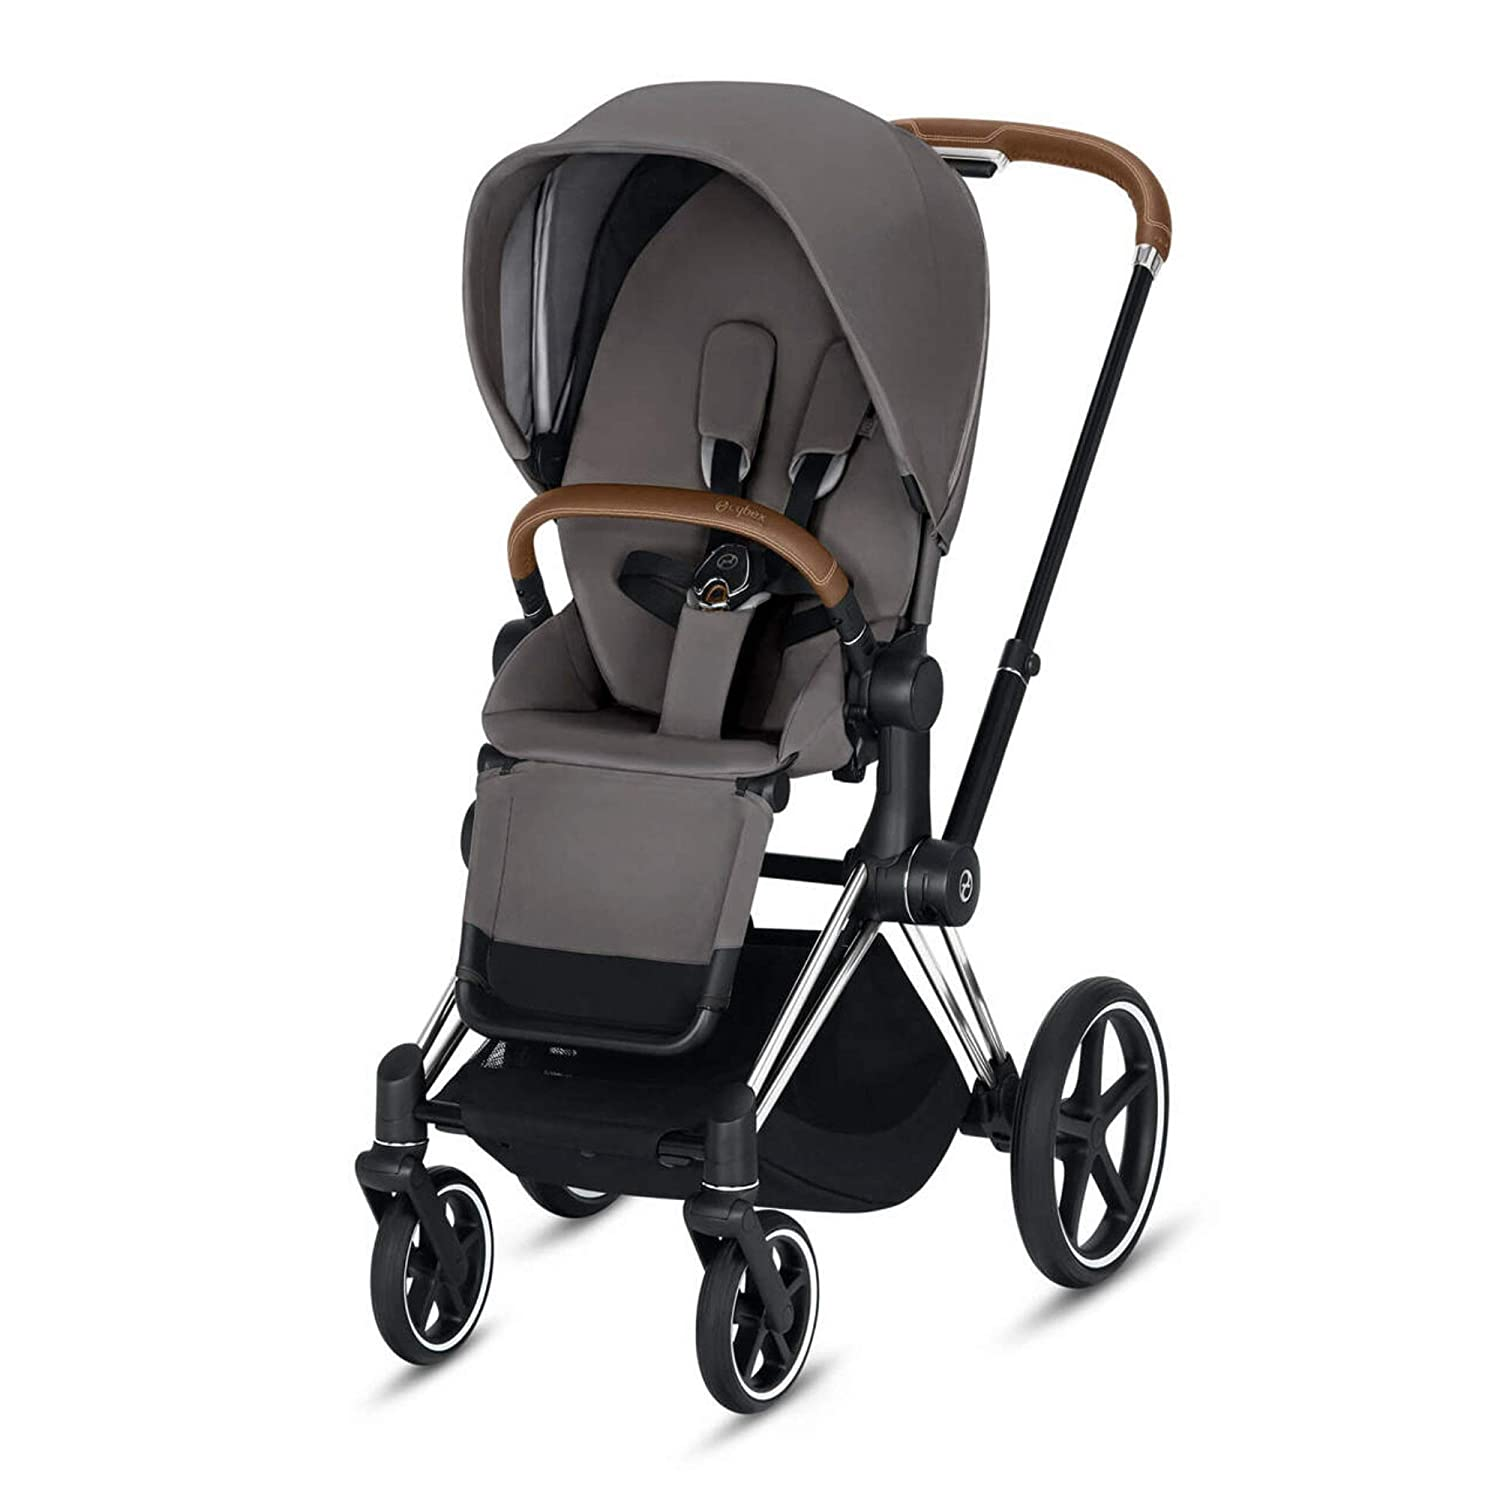 Cybex Priam 3 Complete Stroller, One-Hand Compact Fold, Reversible Seat, Smooth Ride All-Wheel Suspension, Extra Storage, Adjustable Leg Rest, Manhattan Grey with Chrome/Brown Frame